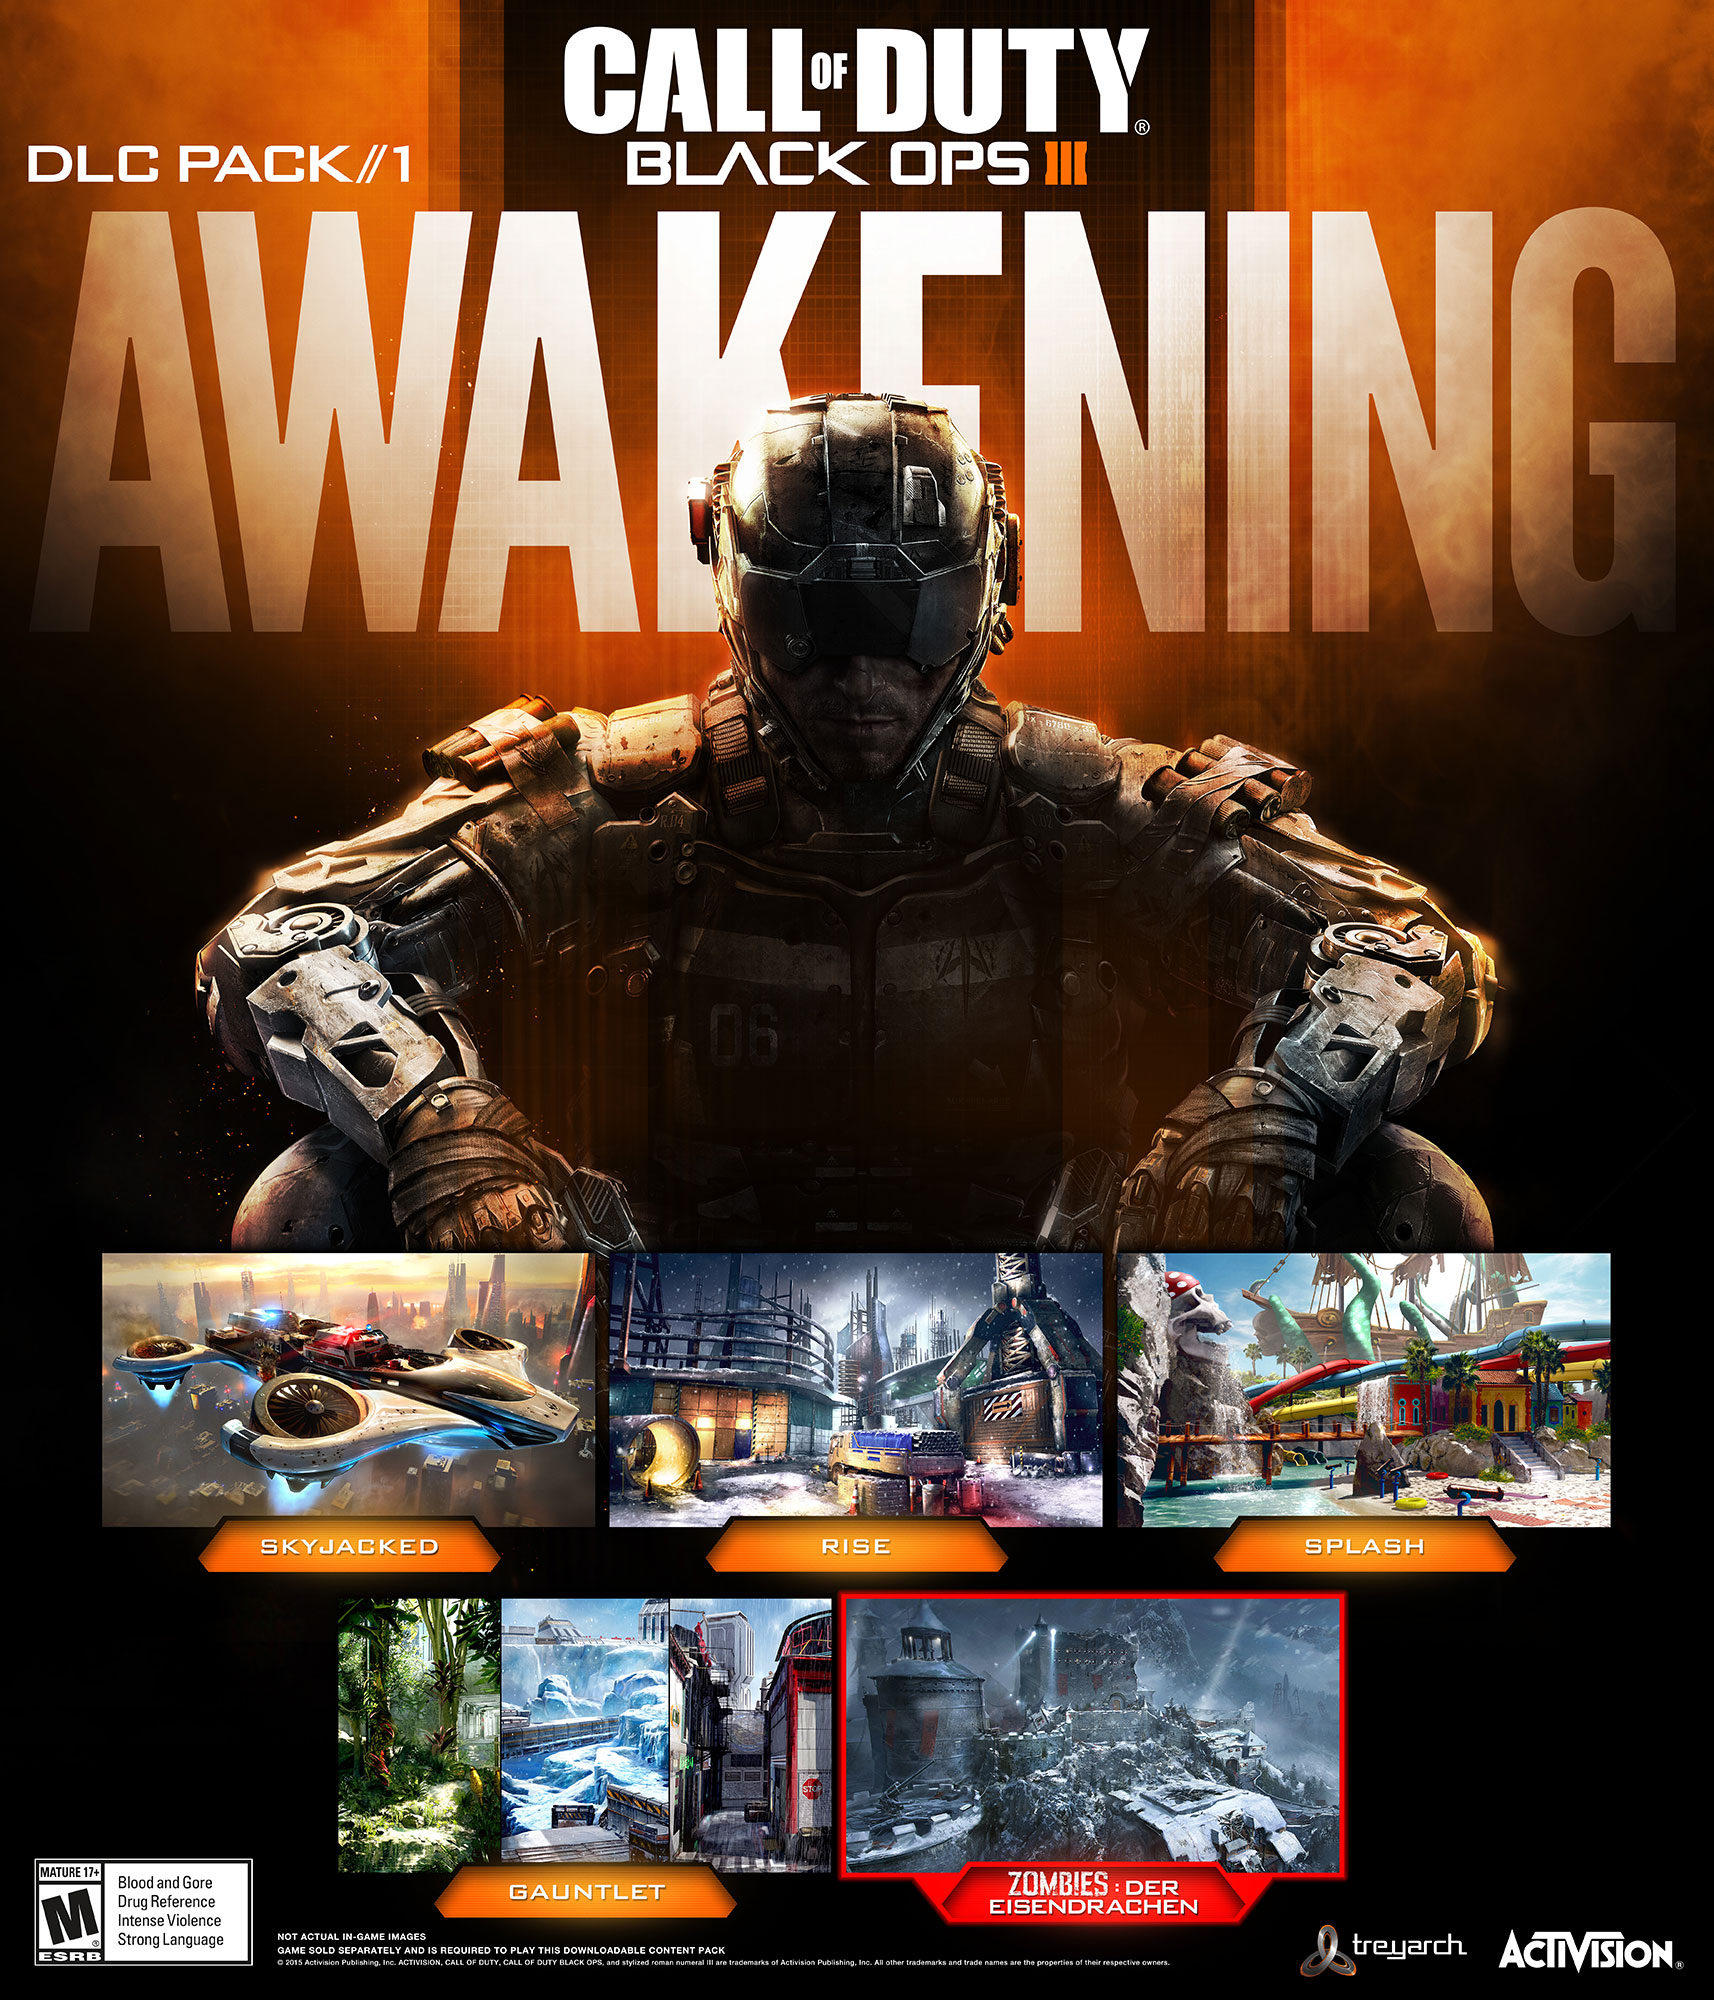 black ops 2 zombies map packs with First Call Of Duty Black Ops 3 Dlc Is Called Awakening Hits In Early 2016 on Black Ops 2 Dlc 3 4 Release Date Rumors On Xbox 360 besides Call Of Duty Black Ops 2 Vengeance Dlc Release Fur Ps3 Und Pc Bekannt additionally Call Of Duty Black Ops 3 Confirms Juggernog Hardened And Digital Deluxe Editions Mini Fridge Confirmed 486524 besides Kino Der Toten Playable  ing Soon furthermore First Call Of Duty Black Ops 3 Dlc Is Called Awakening Hits In Early 2016.